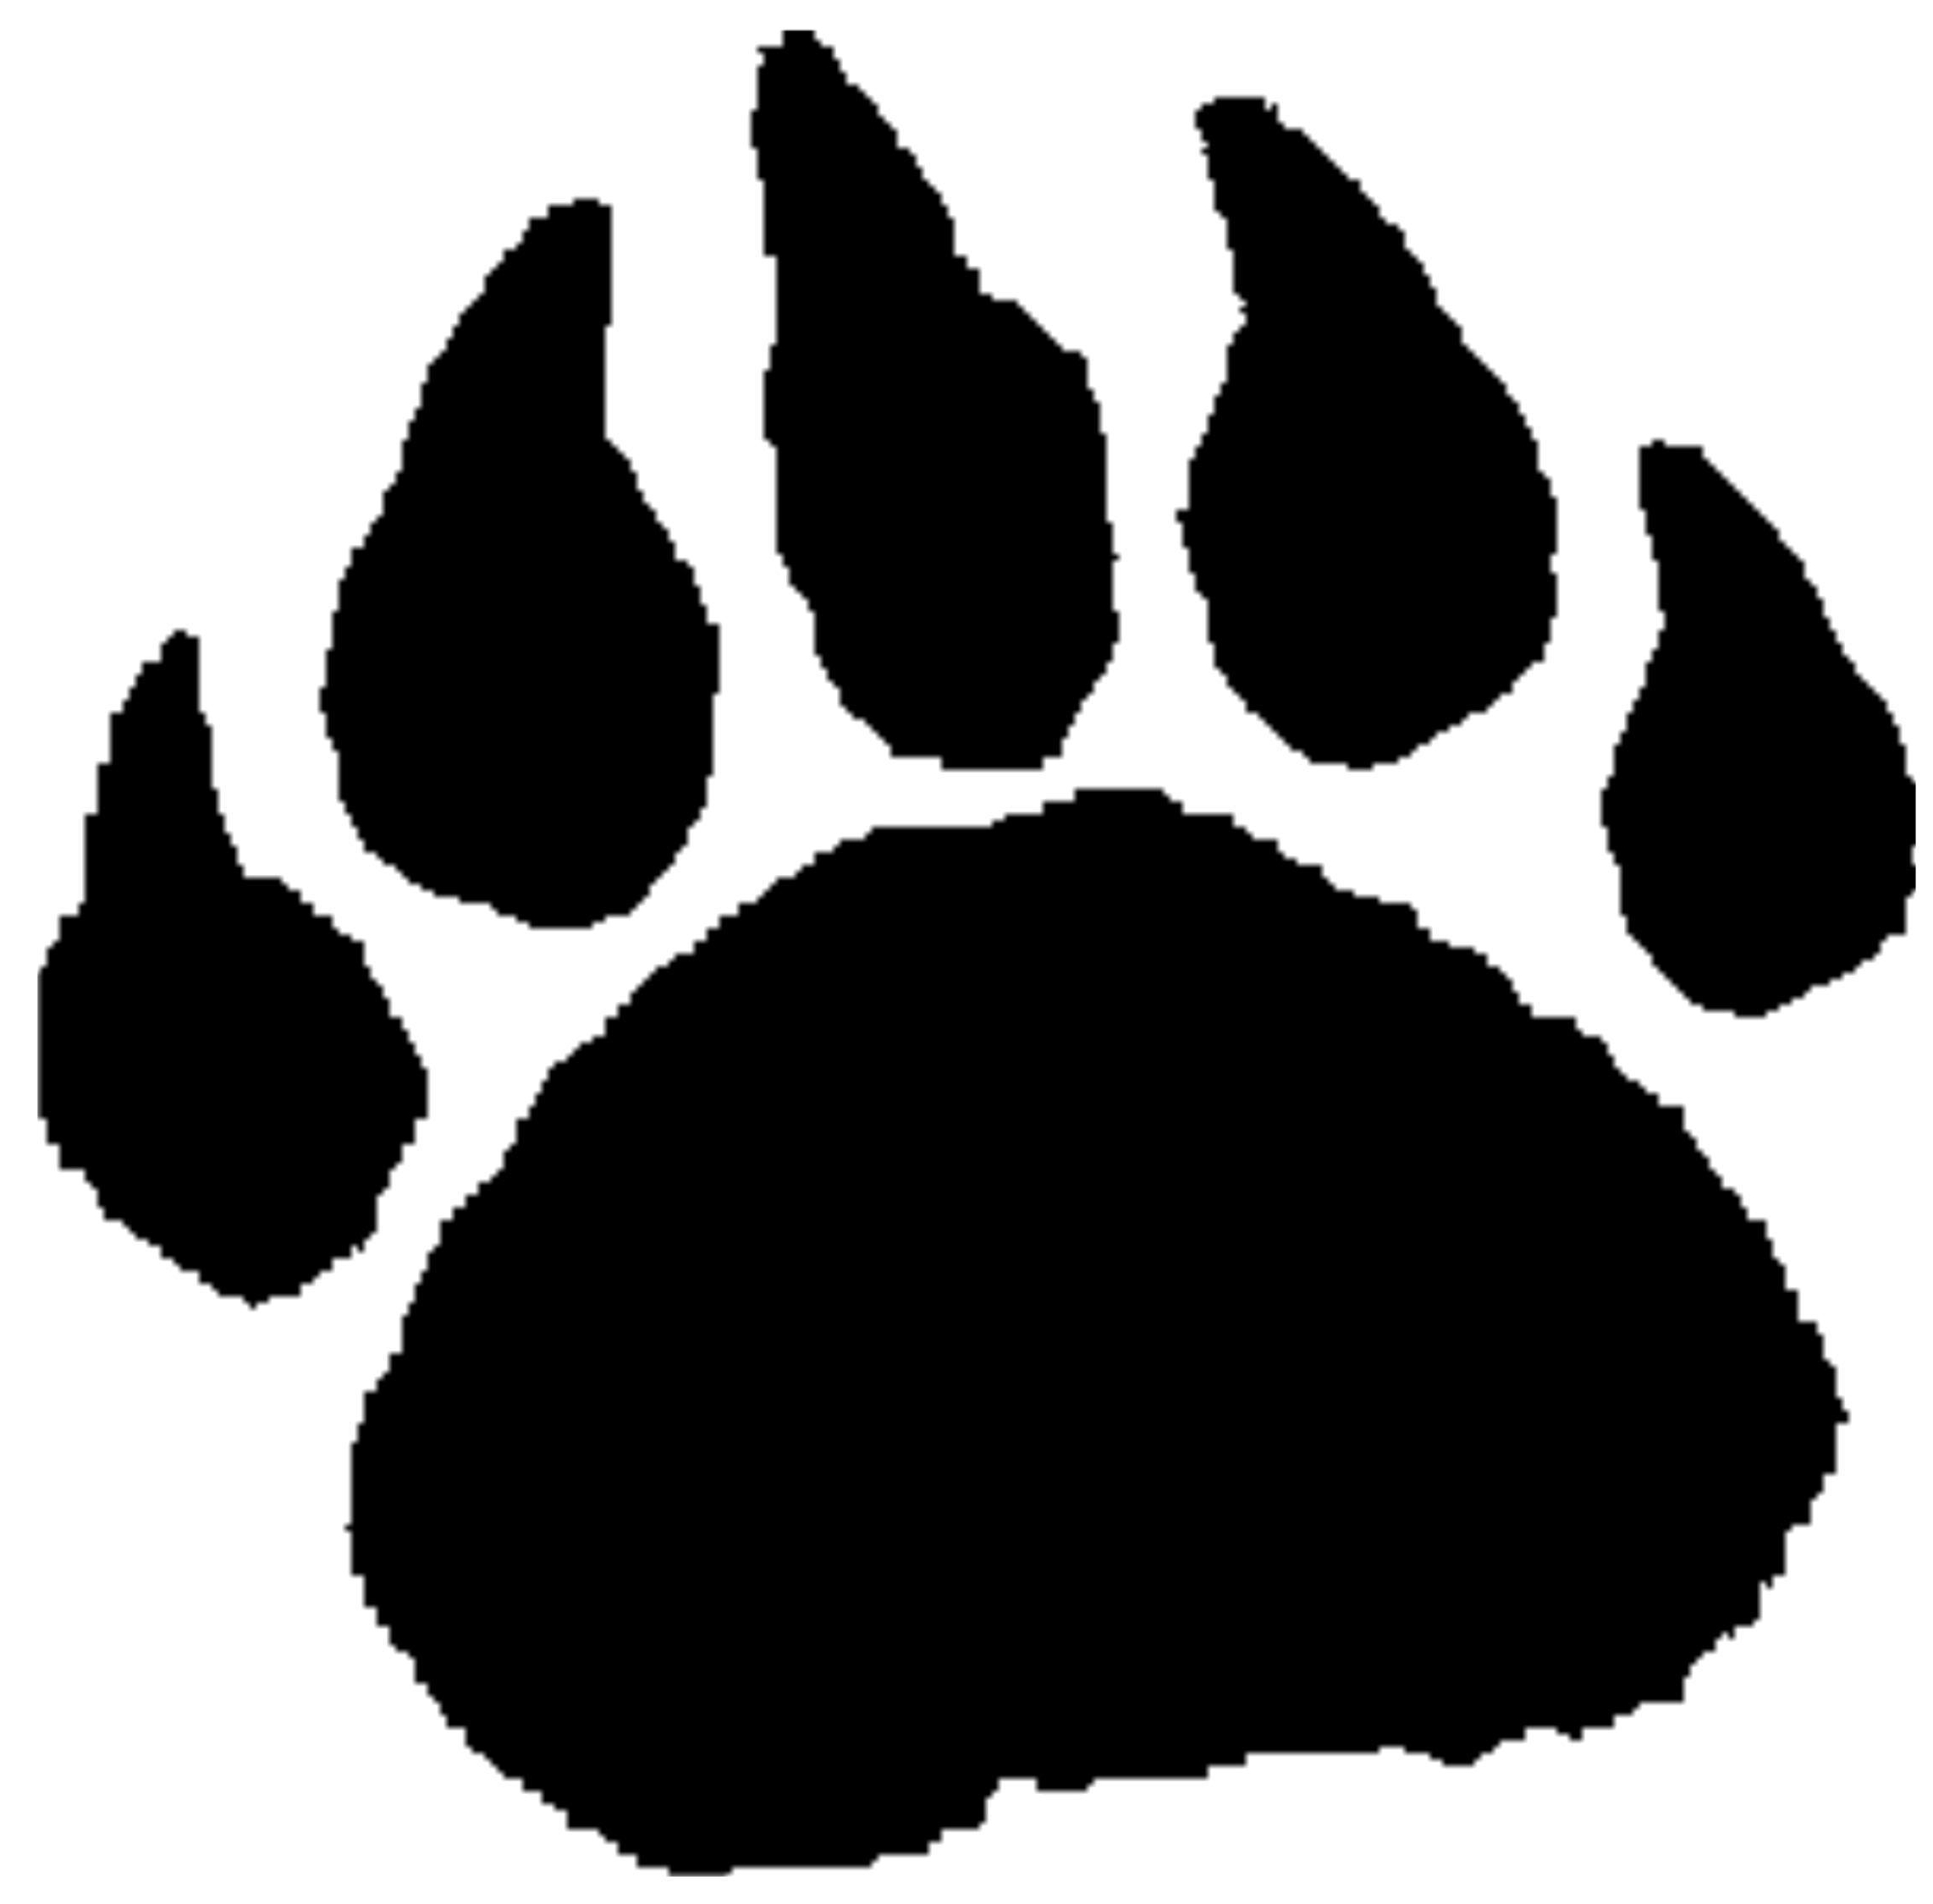 391 Bear Paw free clipart.